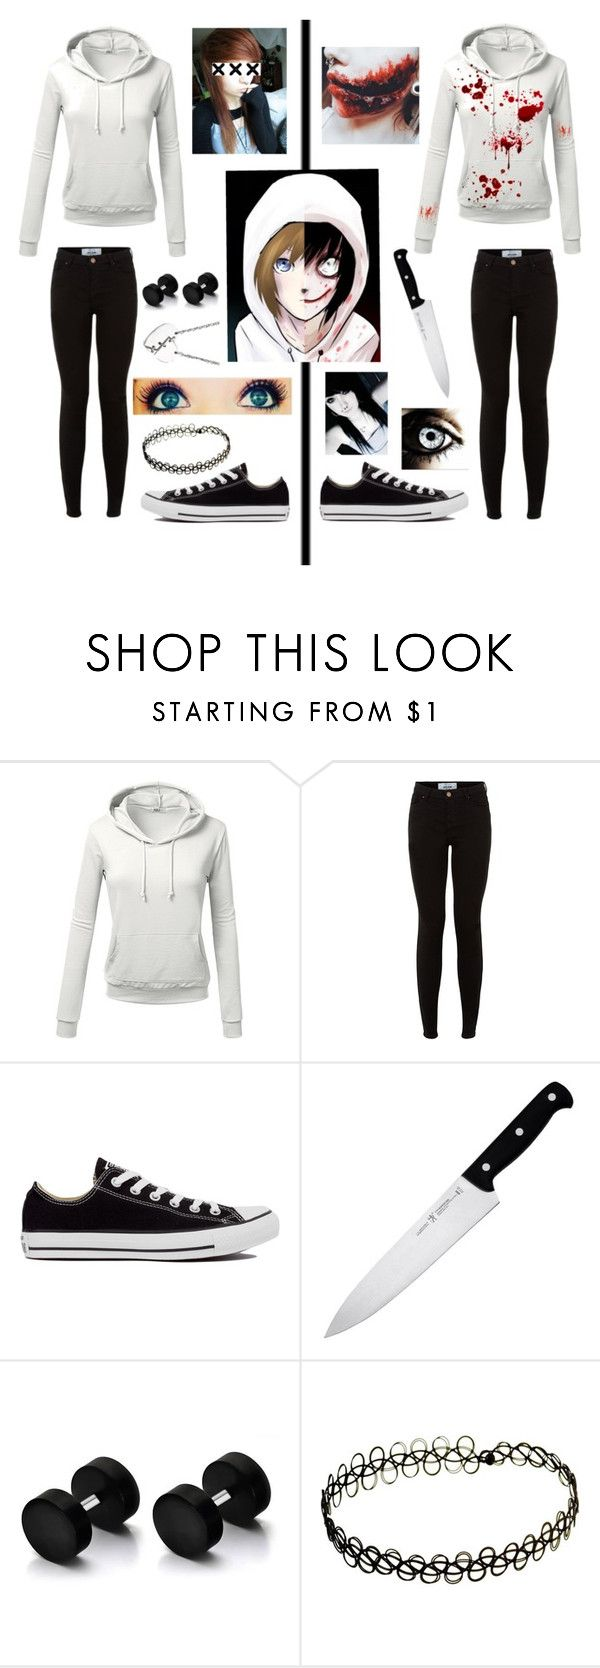 """Jeff The Killer"" by gryffindorgirl-i ❤ liked on Polyvore featuring J.TOMSON, Converse, J.A. Henckels, Marc by Marc Jacobs, women's clothing, women's fashion, women, female, woman and misses"